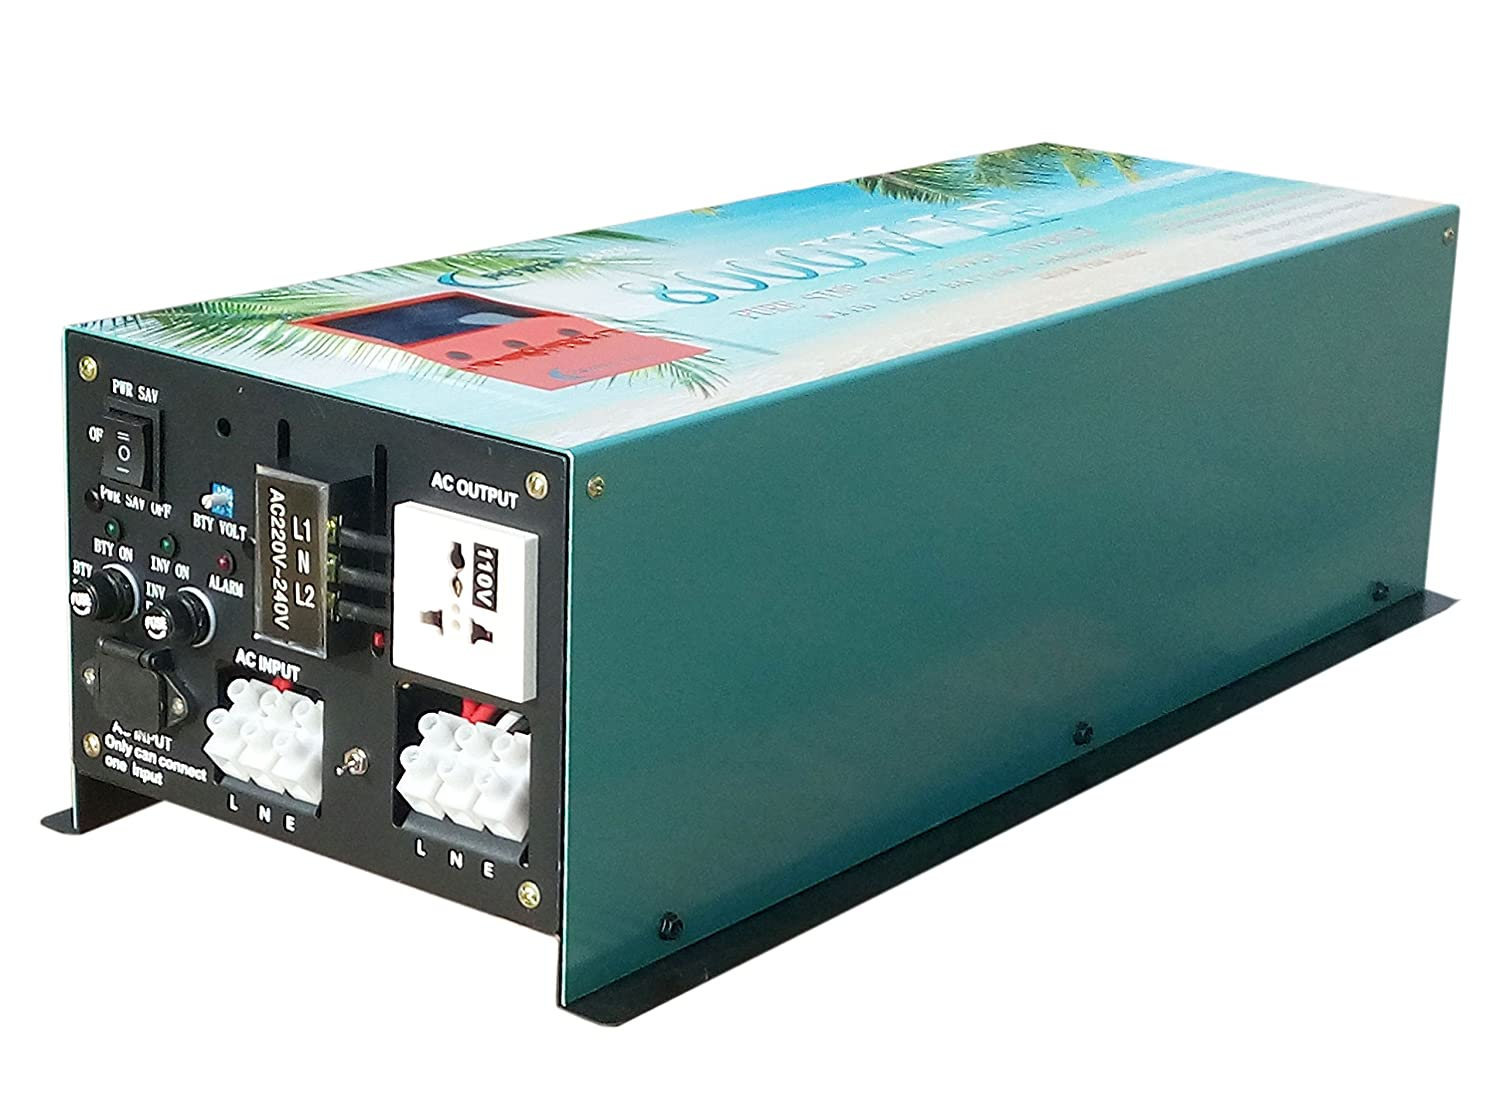 32000w Peak 8000w Lf Split Phase Pure Sine Wave Power Schematic Generator Inverter Circuit Diagram Dc 12v To Ac 110v220v 60hz With 120a Battery Charger Ups Lcd Display Car